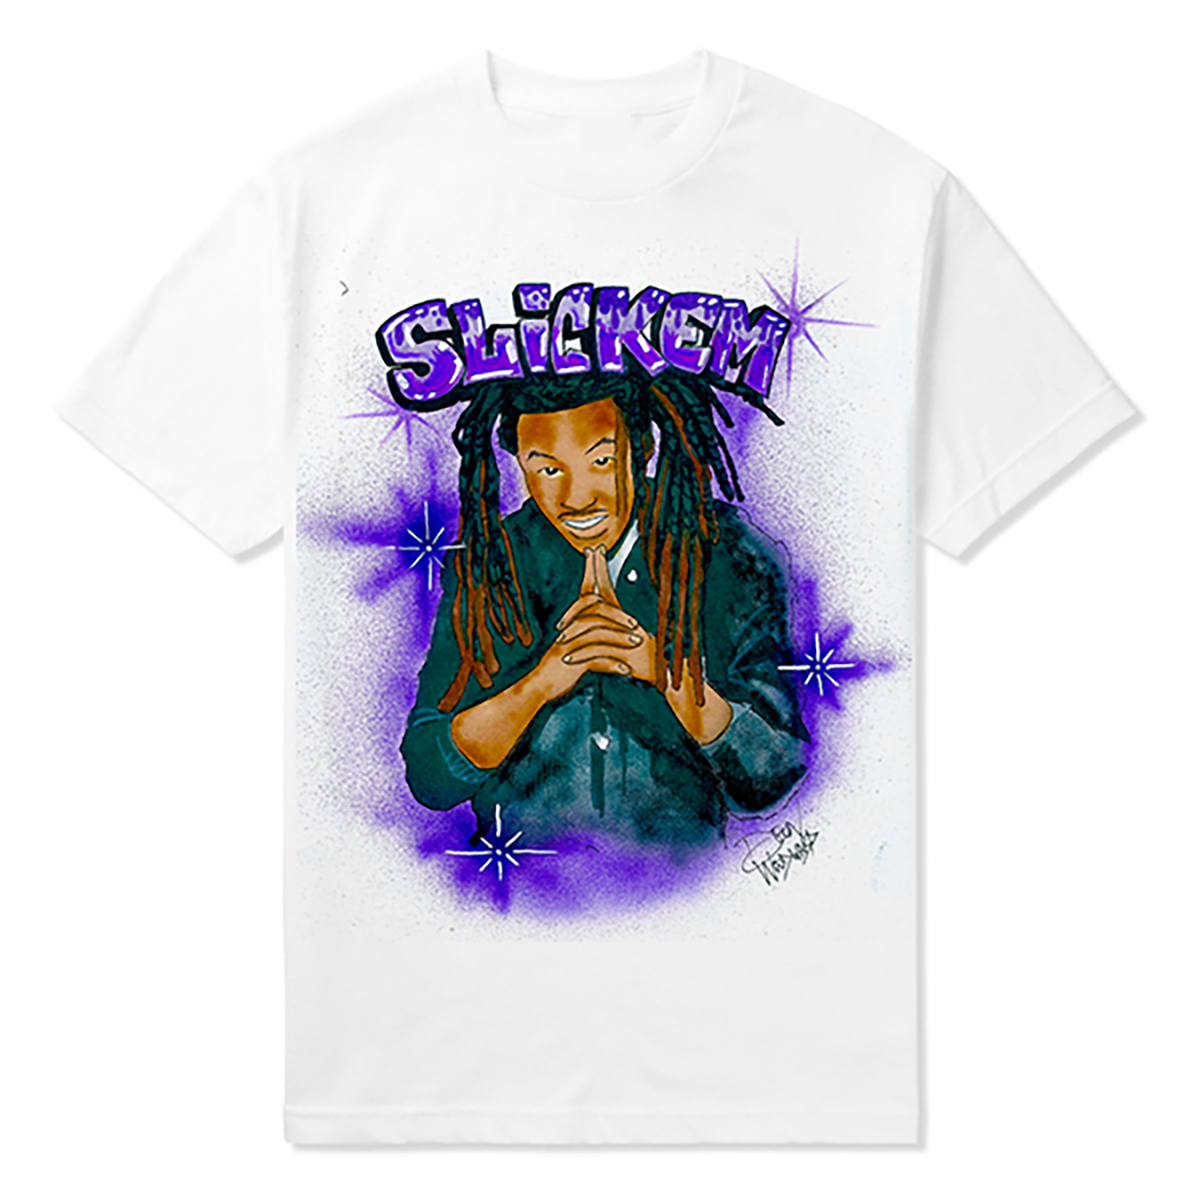 Slickem Airbrushed Tee